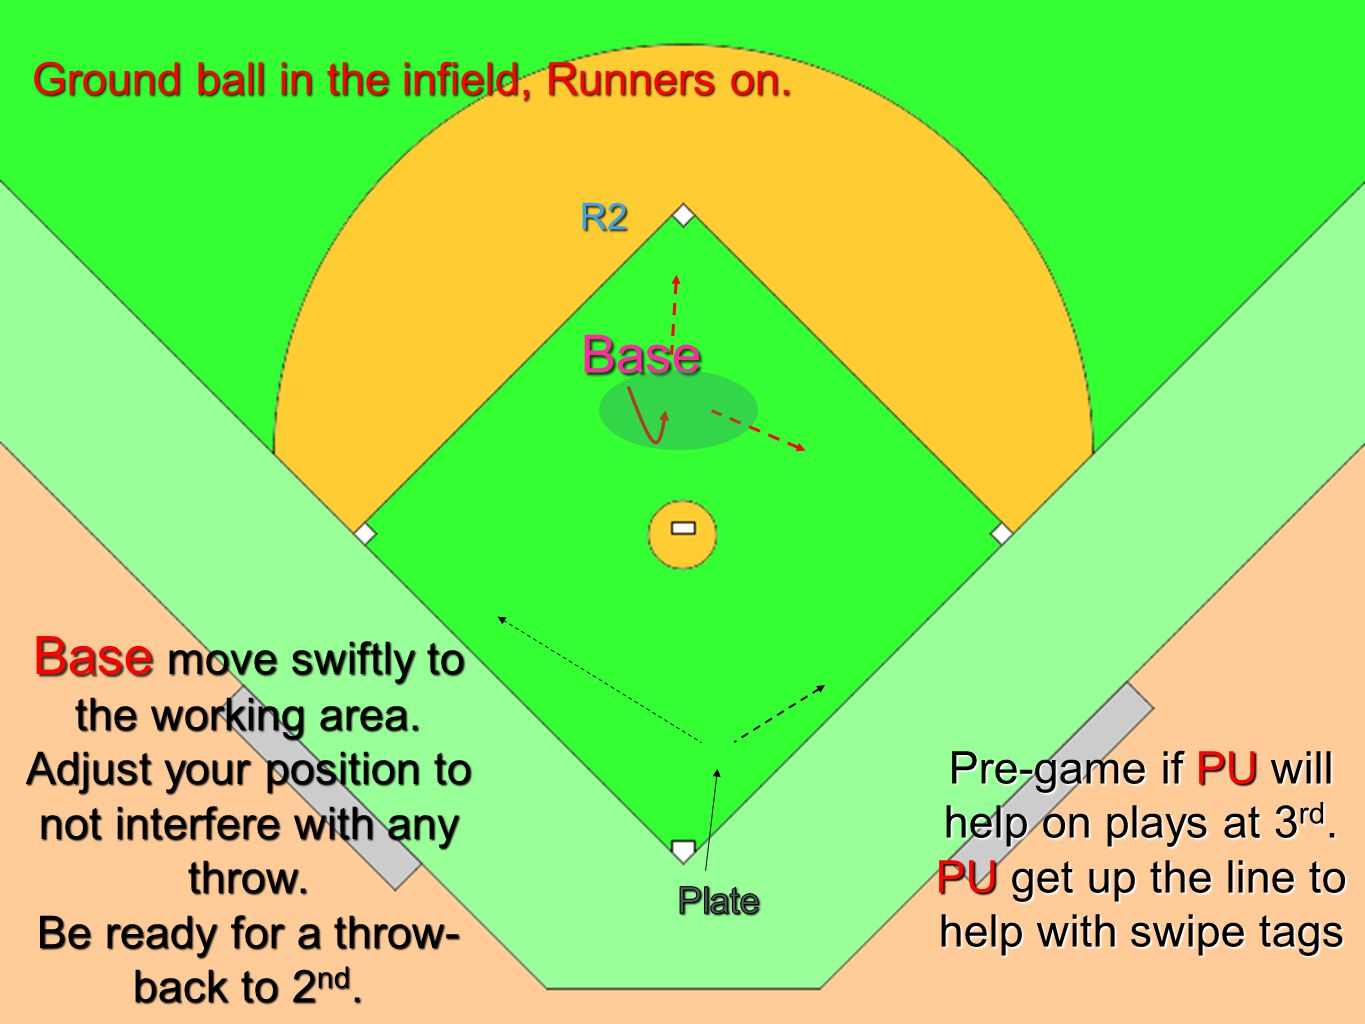 U1 Situation 9 Runner on 2 nd U1 U2 Base R2 Ground ball in the infield, Runners on.